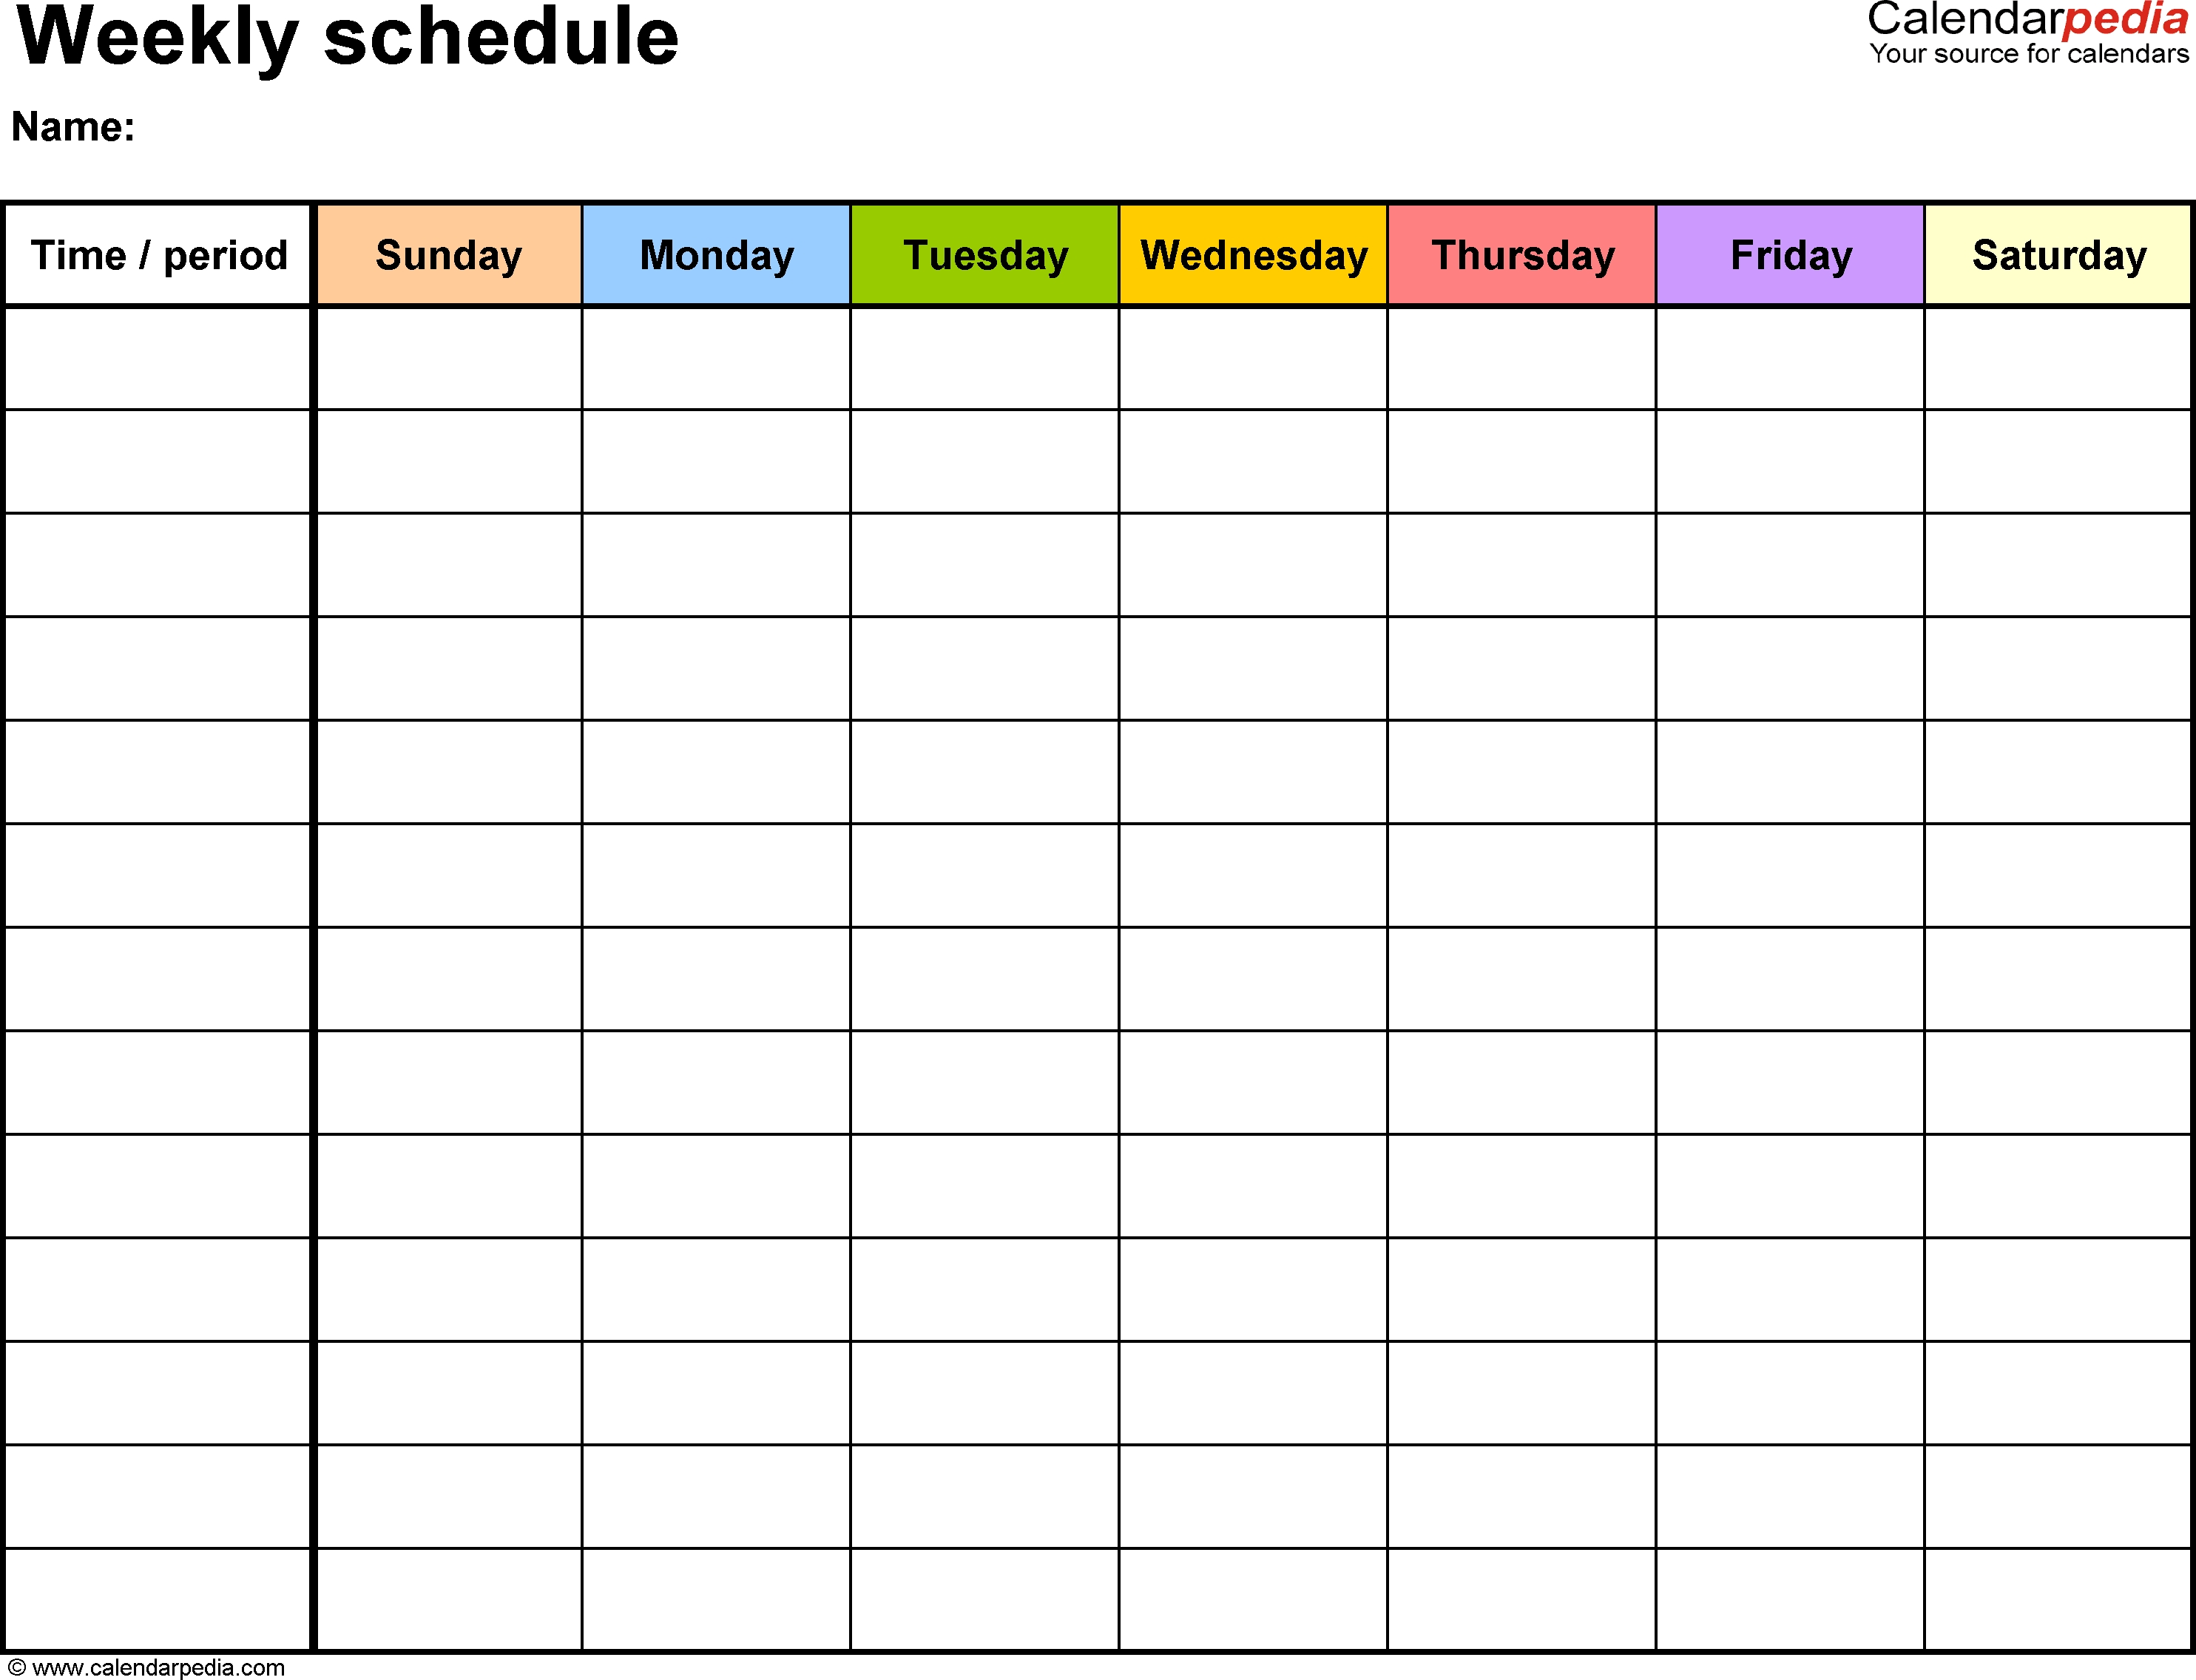 Free Weekly Schedule Templates For Excel - 18 Templates | ~Yoga pertaining to Free Printable Weekly Calendar Templates